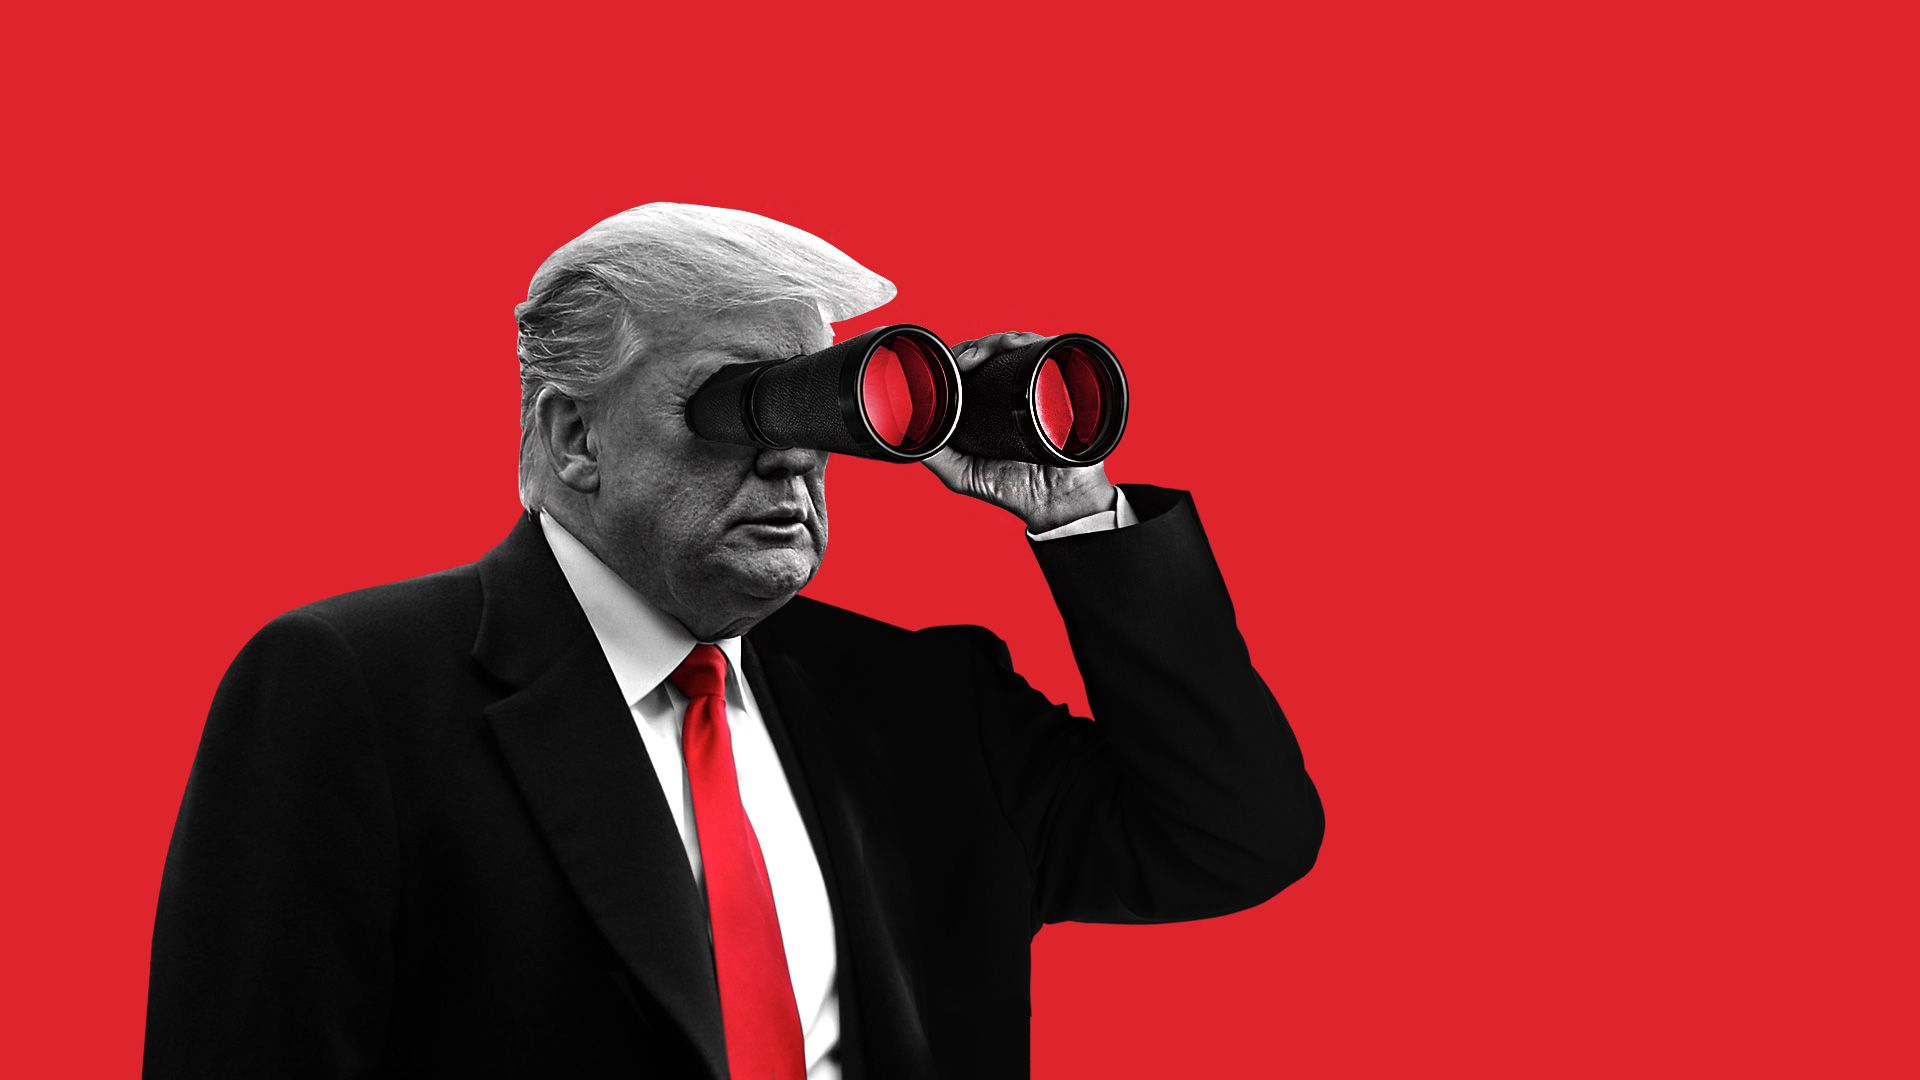 Illustration of Trump peering into the distance with binoculars